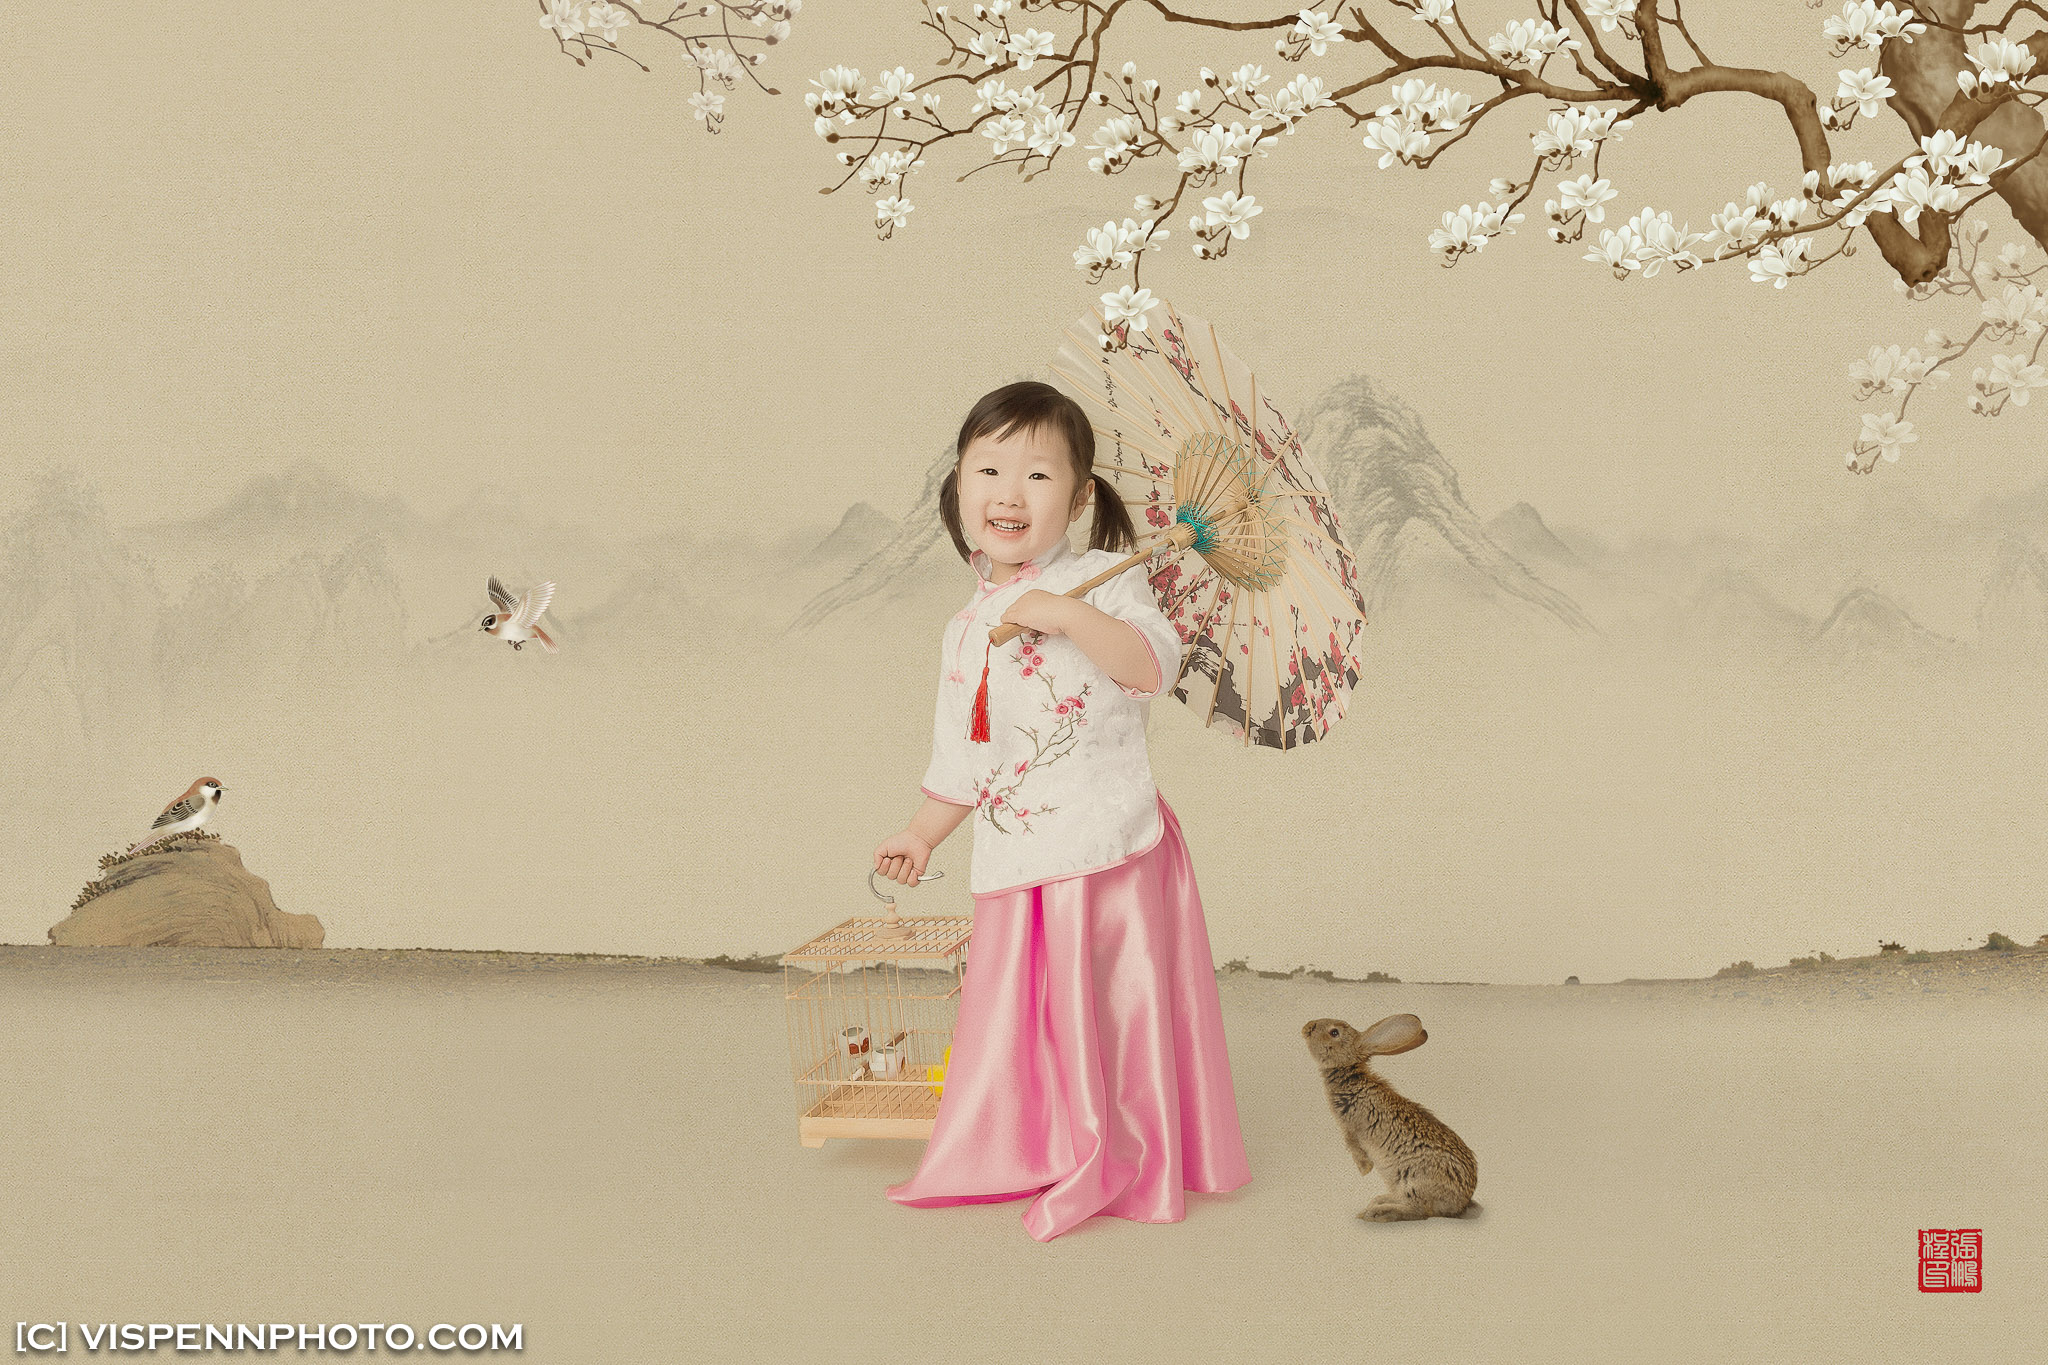 Melbourne Newborn Baby Family Photo BaoBao VISPENN 墨尔本 儿童 宝宝 百天照 满月照 孕妇照 全家福 KIDS VISPENN JuliaZhu 0305